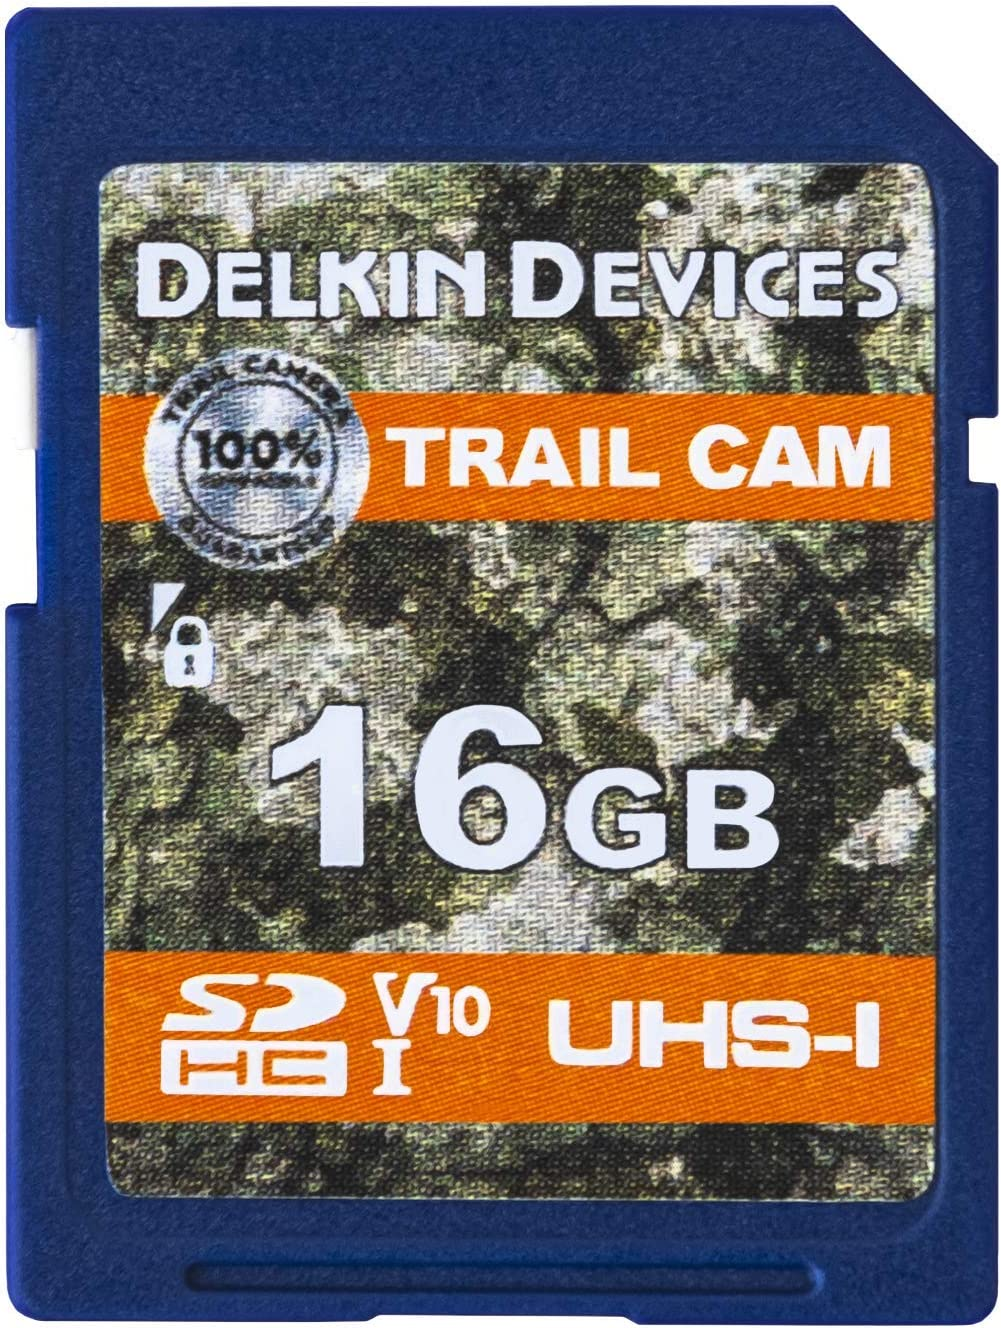 Delkin 16GB SD Card Digital SD Card Media Storage for Trail Cameras and Game Cameras Designed for Use in The Field in Hunting Cameras and Trail Cams